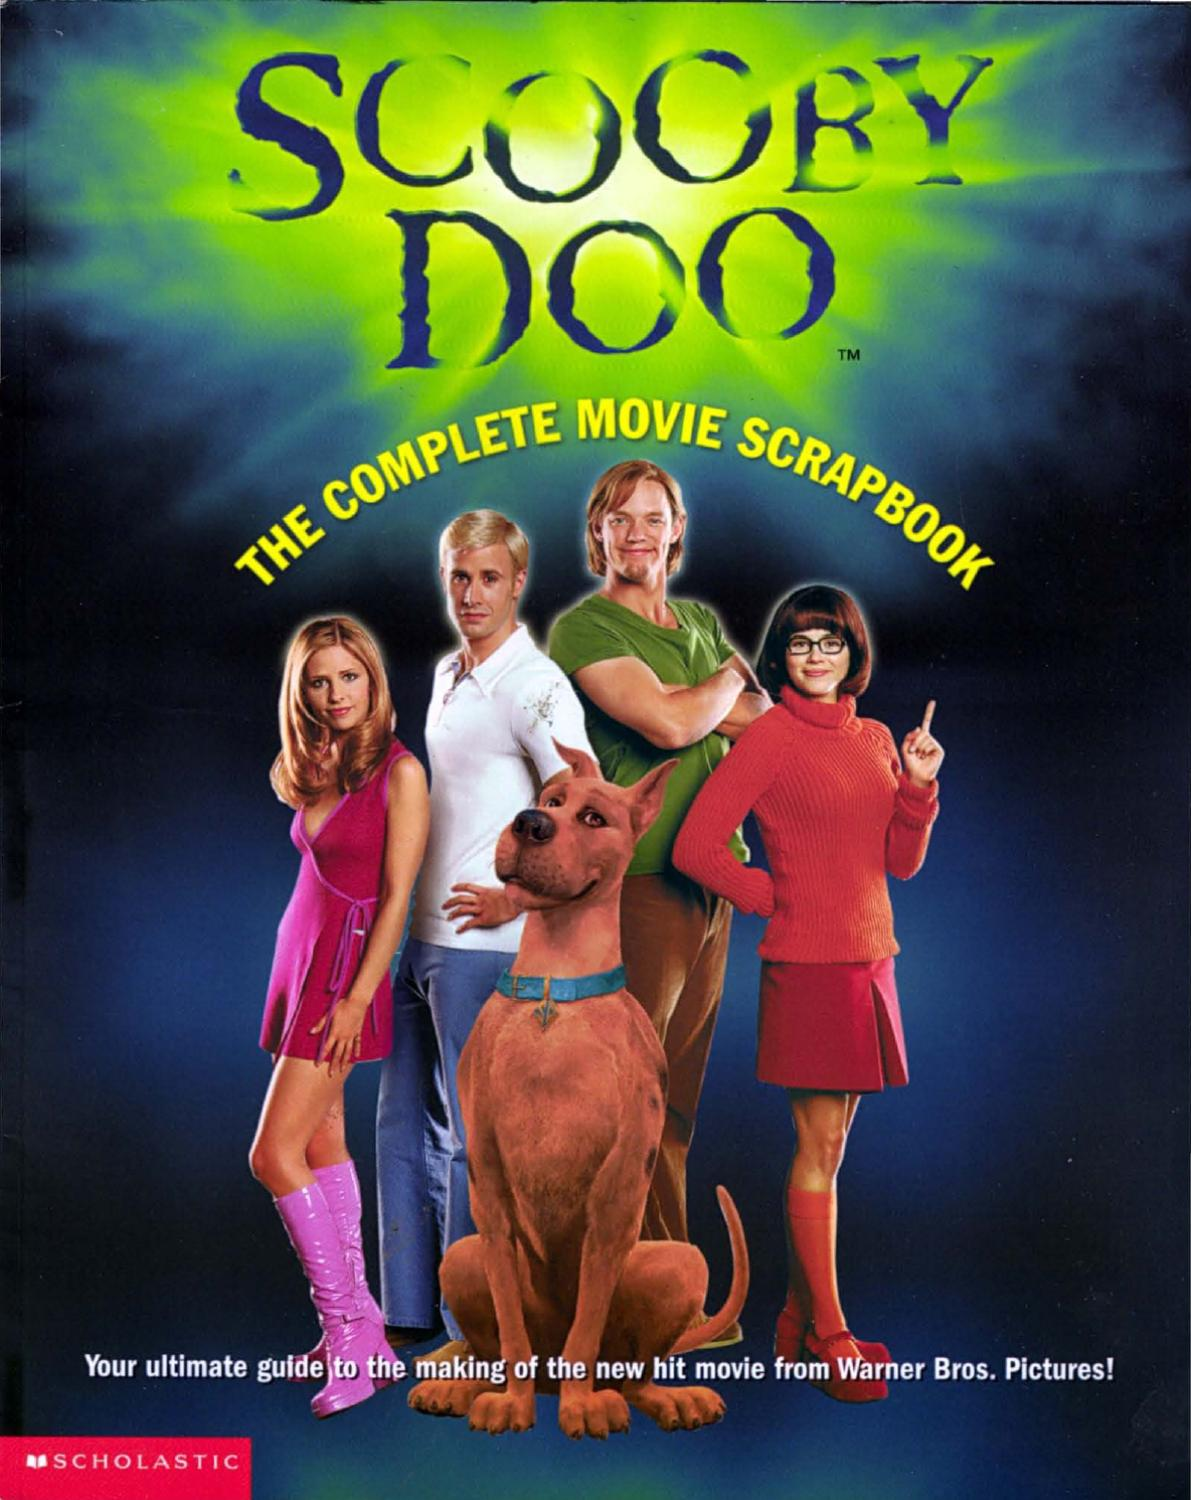 Scooby doo the complete movie scrapbook by vinnie - Scoobidou film ...